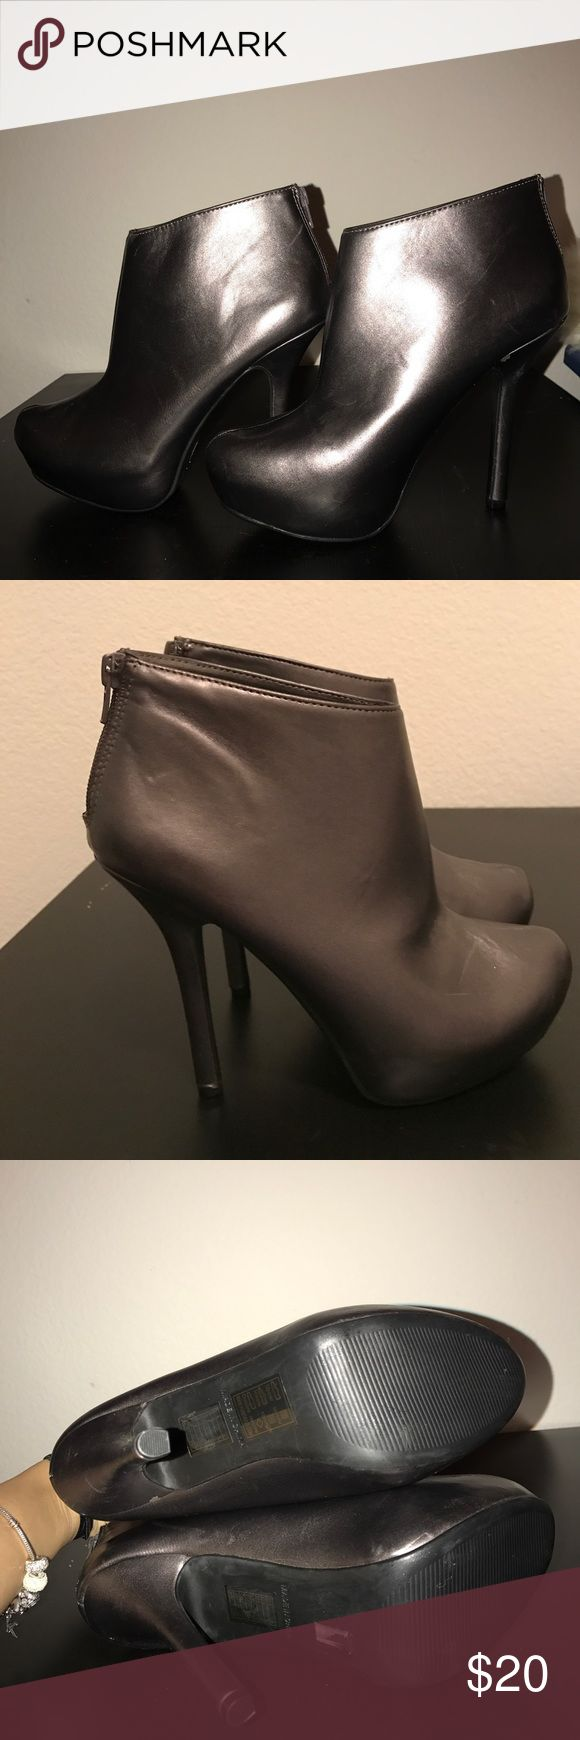 Grey metallic ankle boots New never worn heel is 5 inches high Forever 21 Shoes Ankle Boots & Booties